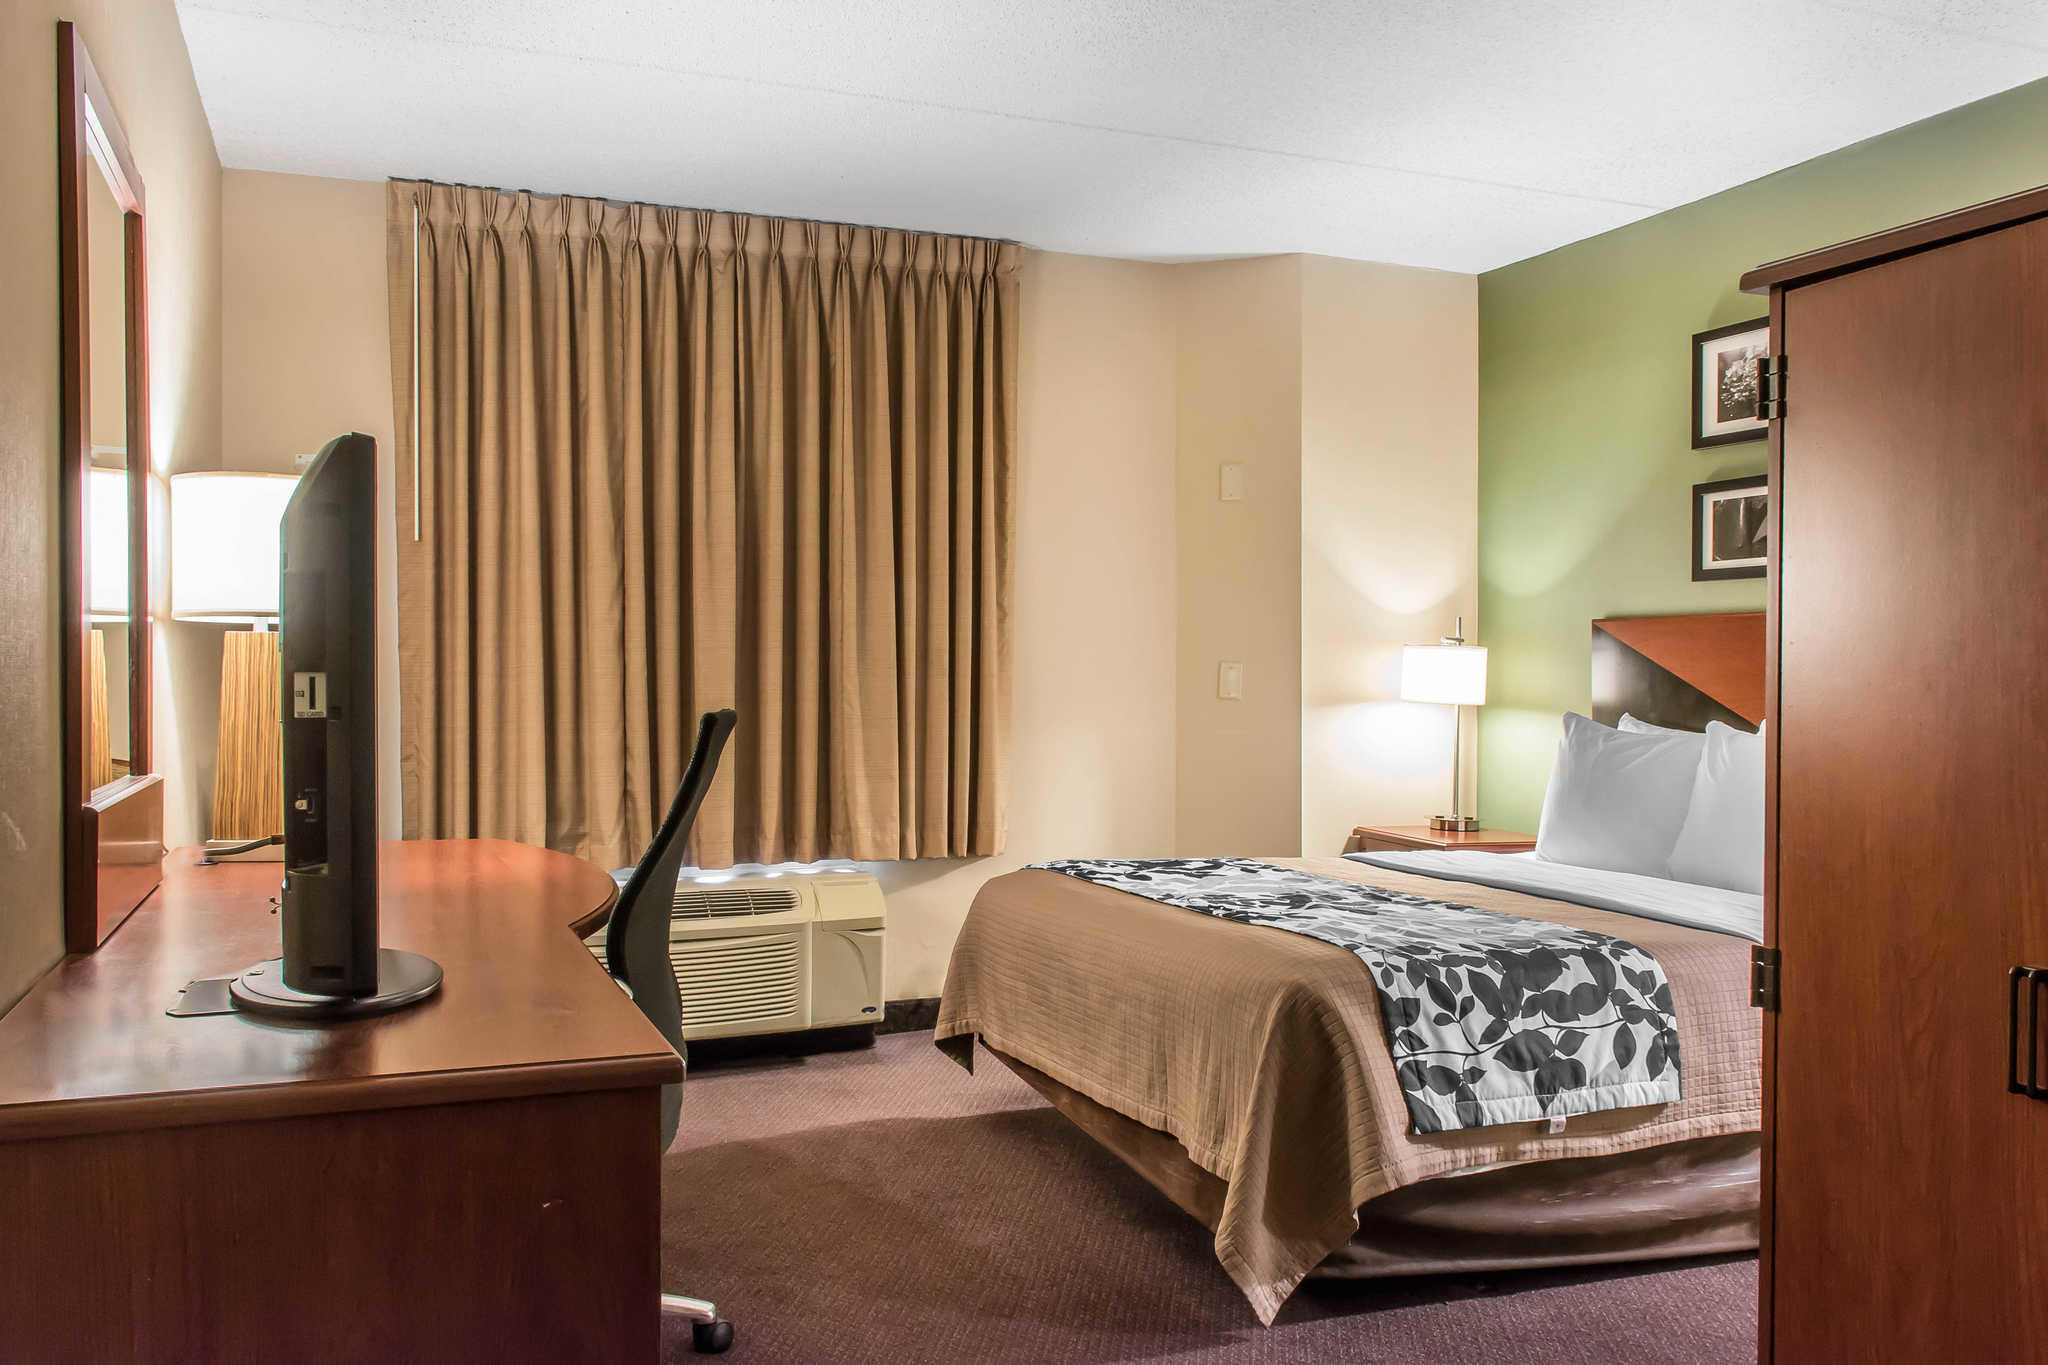 Sleep Inn & Suites of Lancaster County image 9